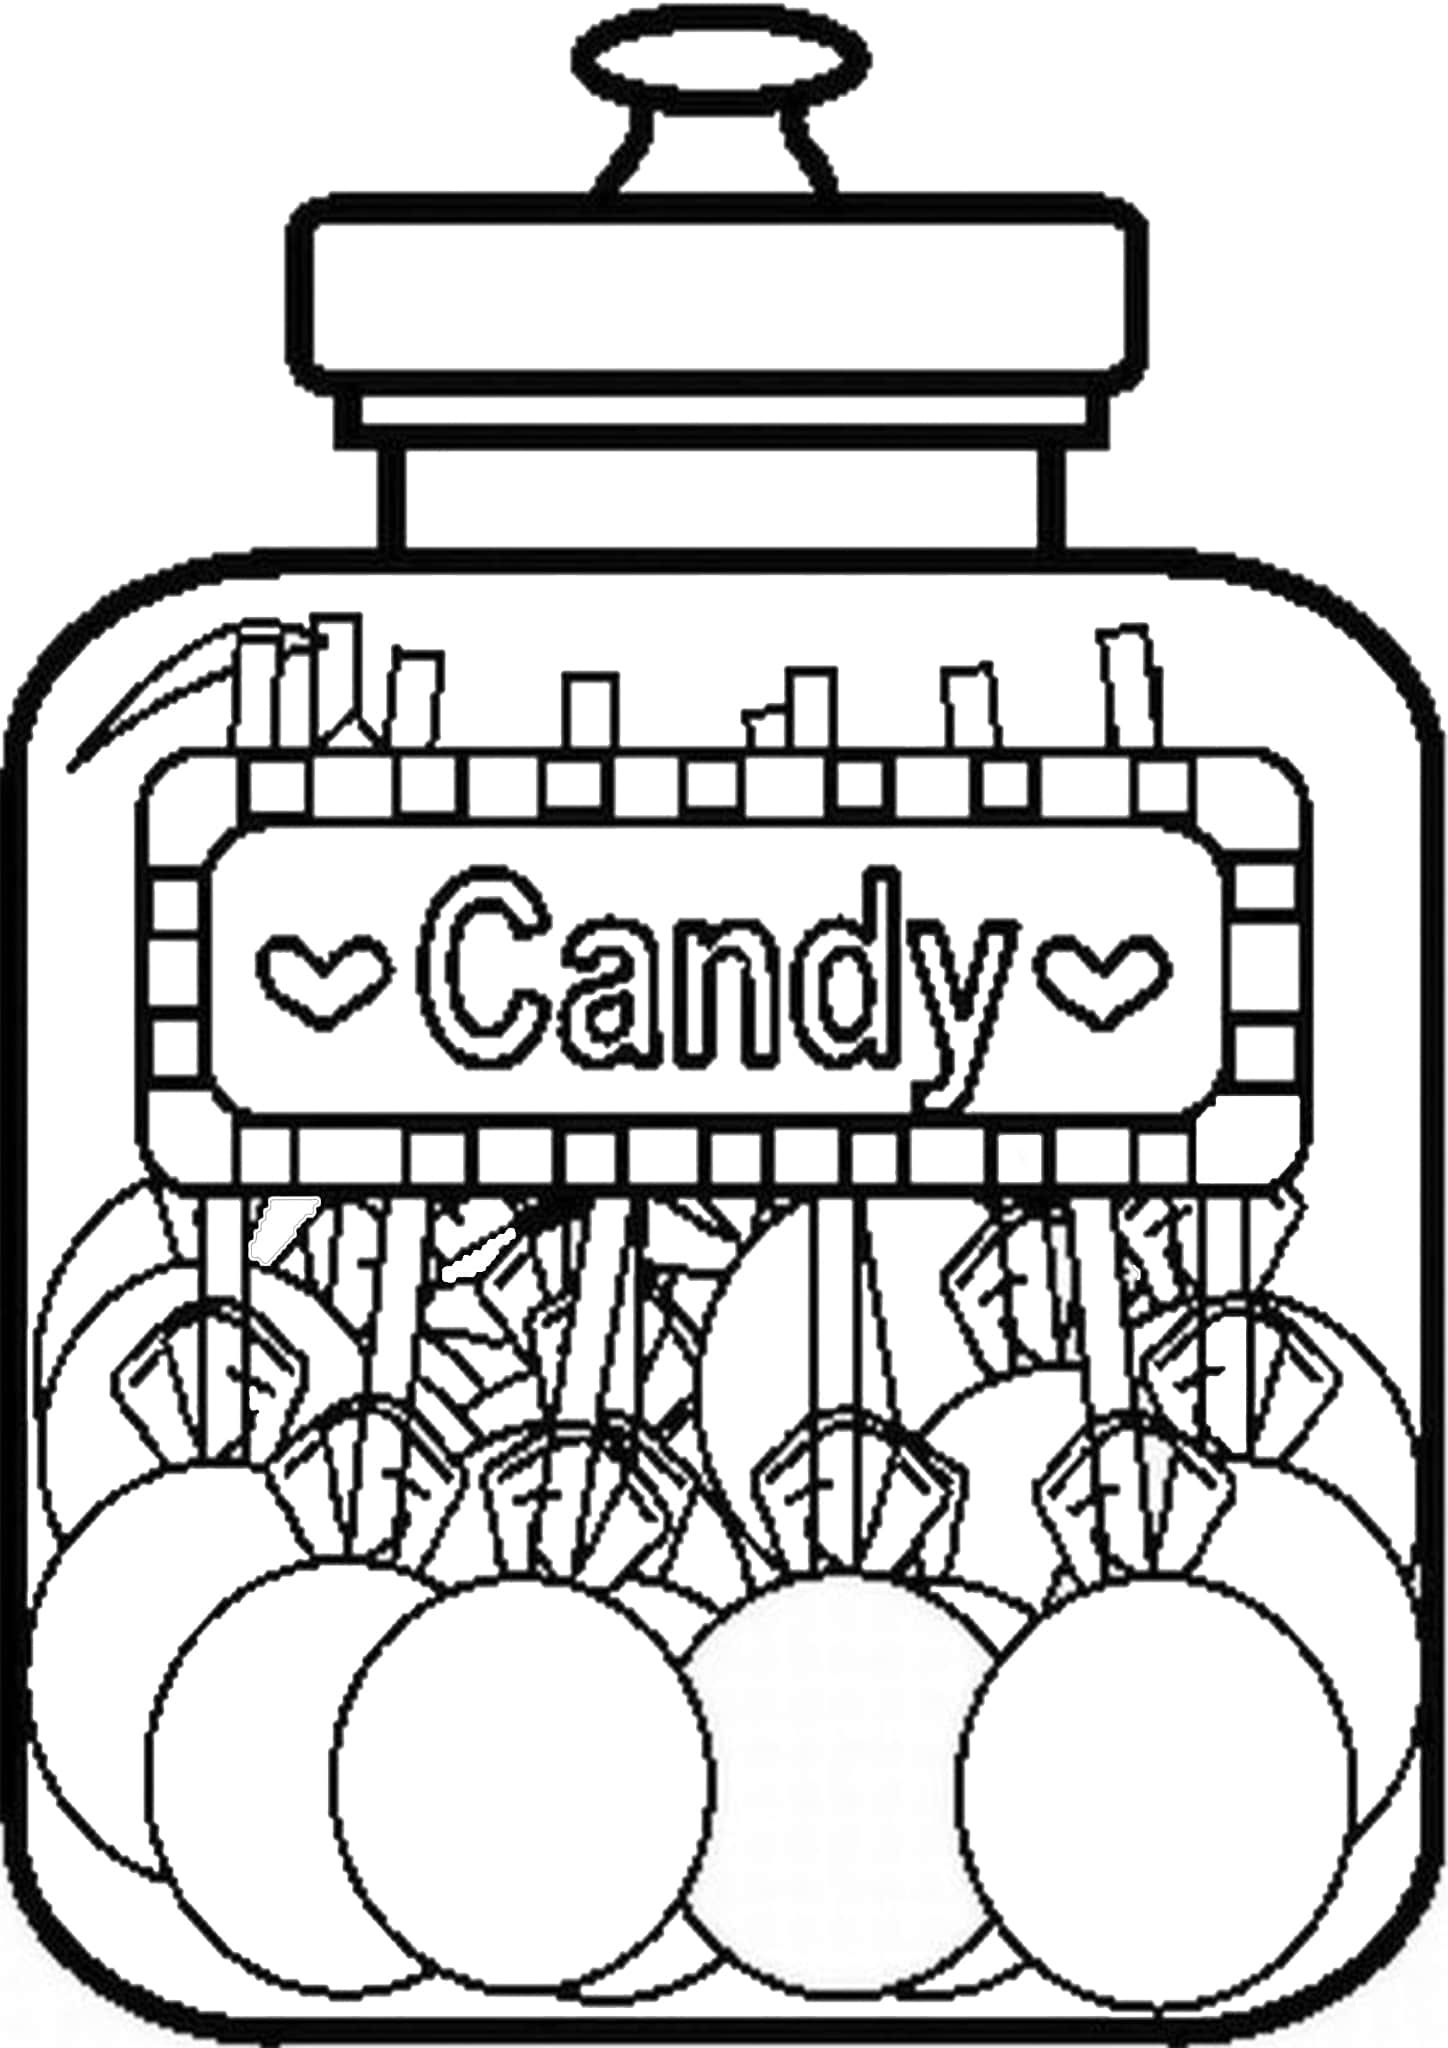 Free Easy To Print Candy Coloring Pages Candy Coloring Pages Printable Coloring Pages Free Printable Coloring Pages